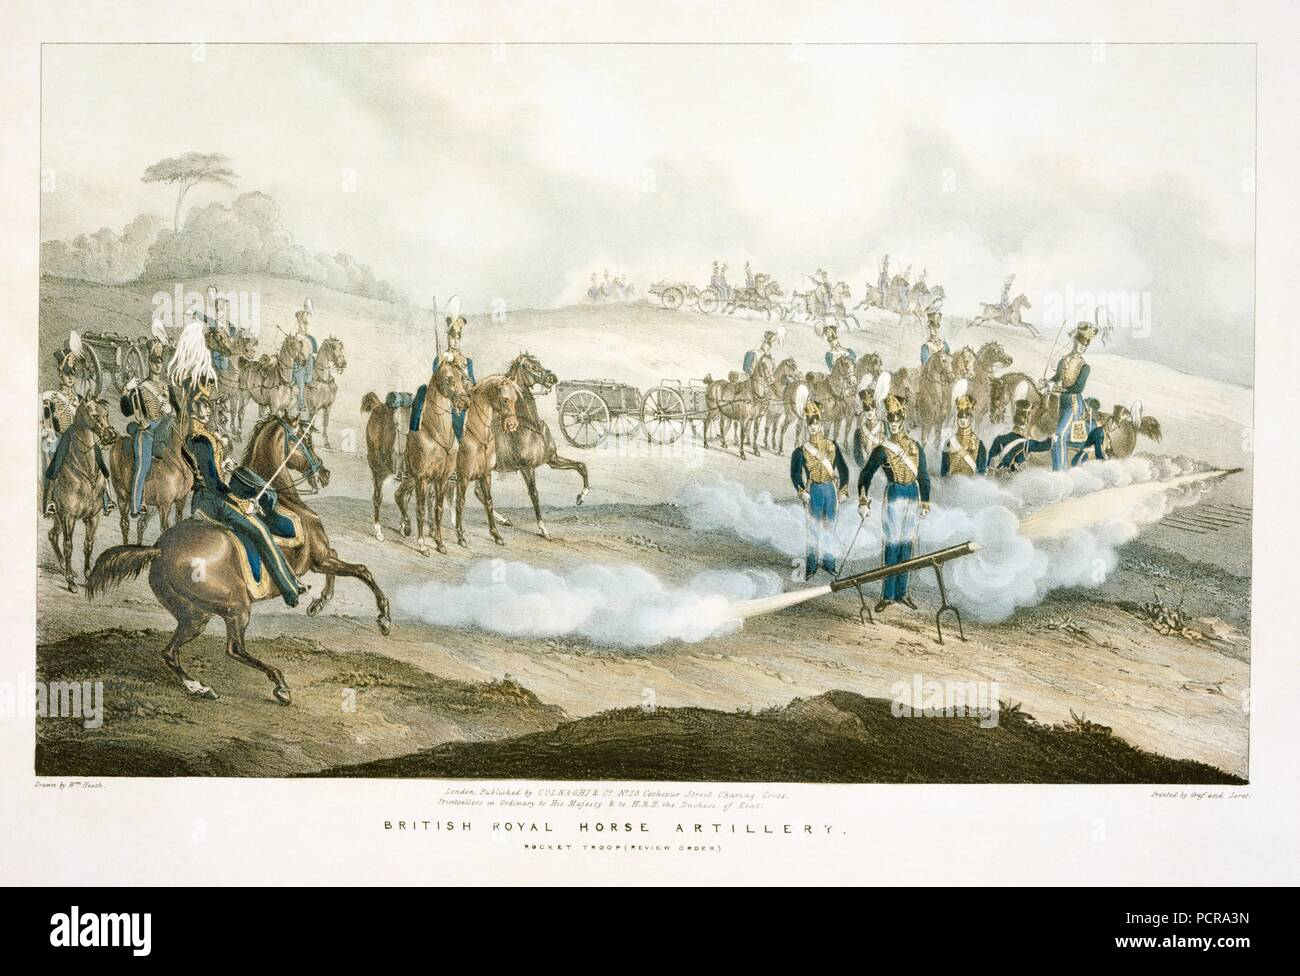 British Royal Horse Artillery rocket troop, 19th century. In 1815 at the Battle of Waterloo, Major Edward Charles Whinyates' rocket troop were attached to the Cavalry Corps, and equipped with both rockets and cannon. Accounts of the effectiveness of their rockets vary, but they were regarded as an irritant by the French. - Stock Image